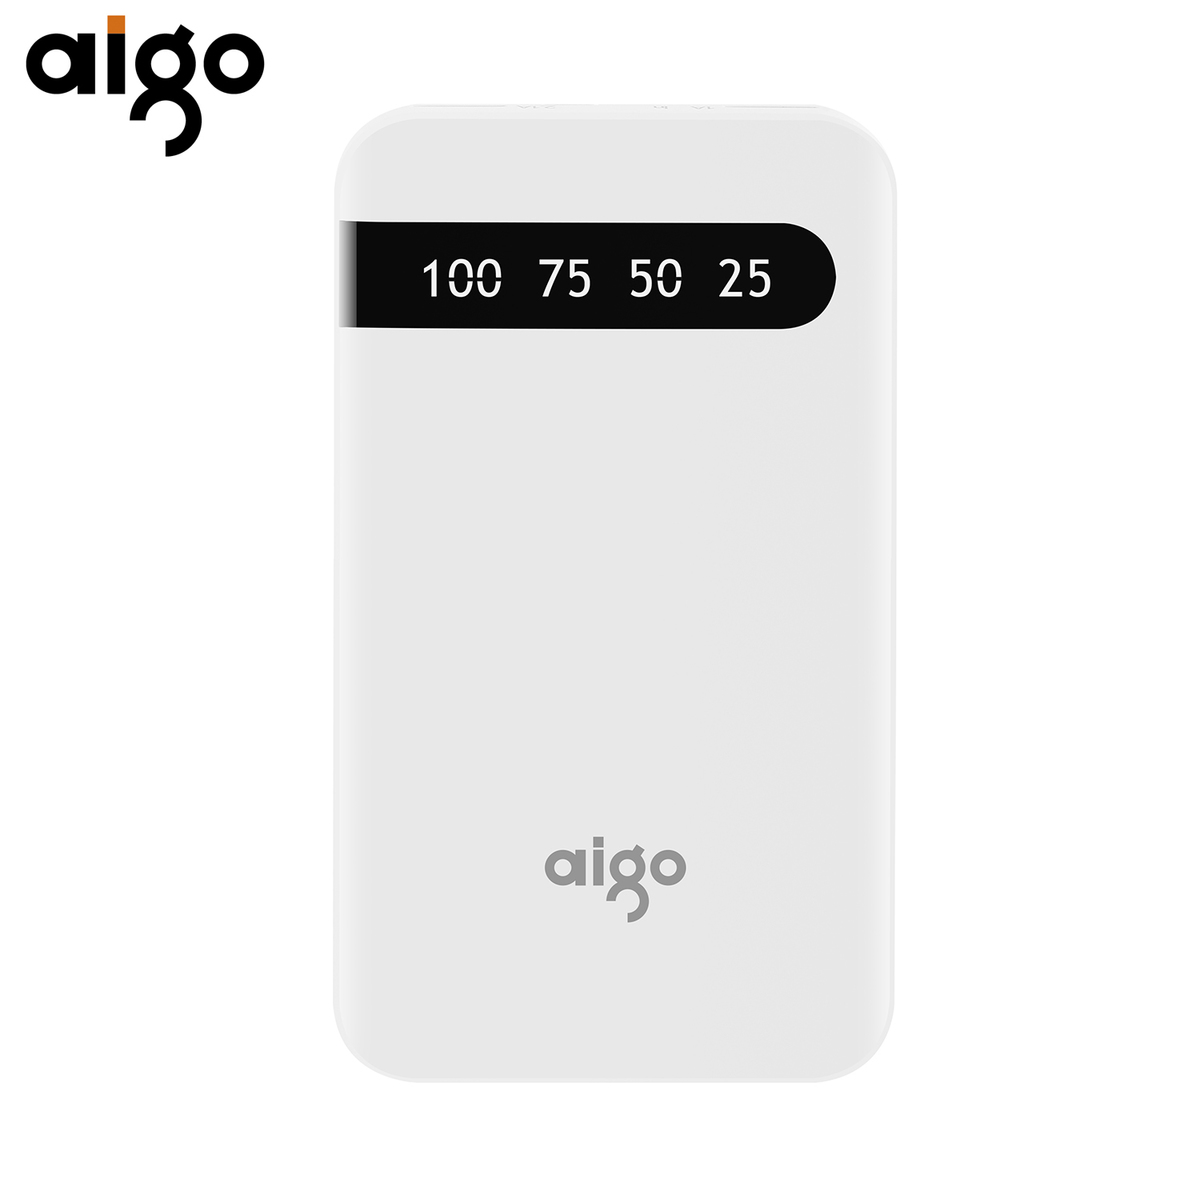 Aigo D20000 Pover Bank 20000mAh Large Capacity Power Bank Dual USB Input Port Charger Ex ...